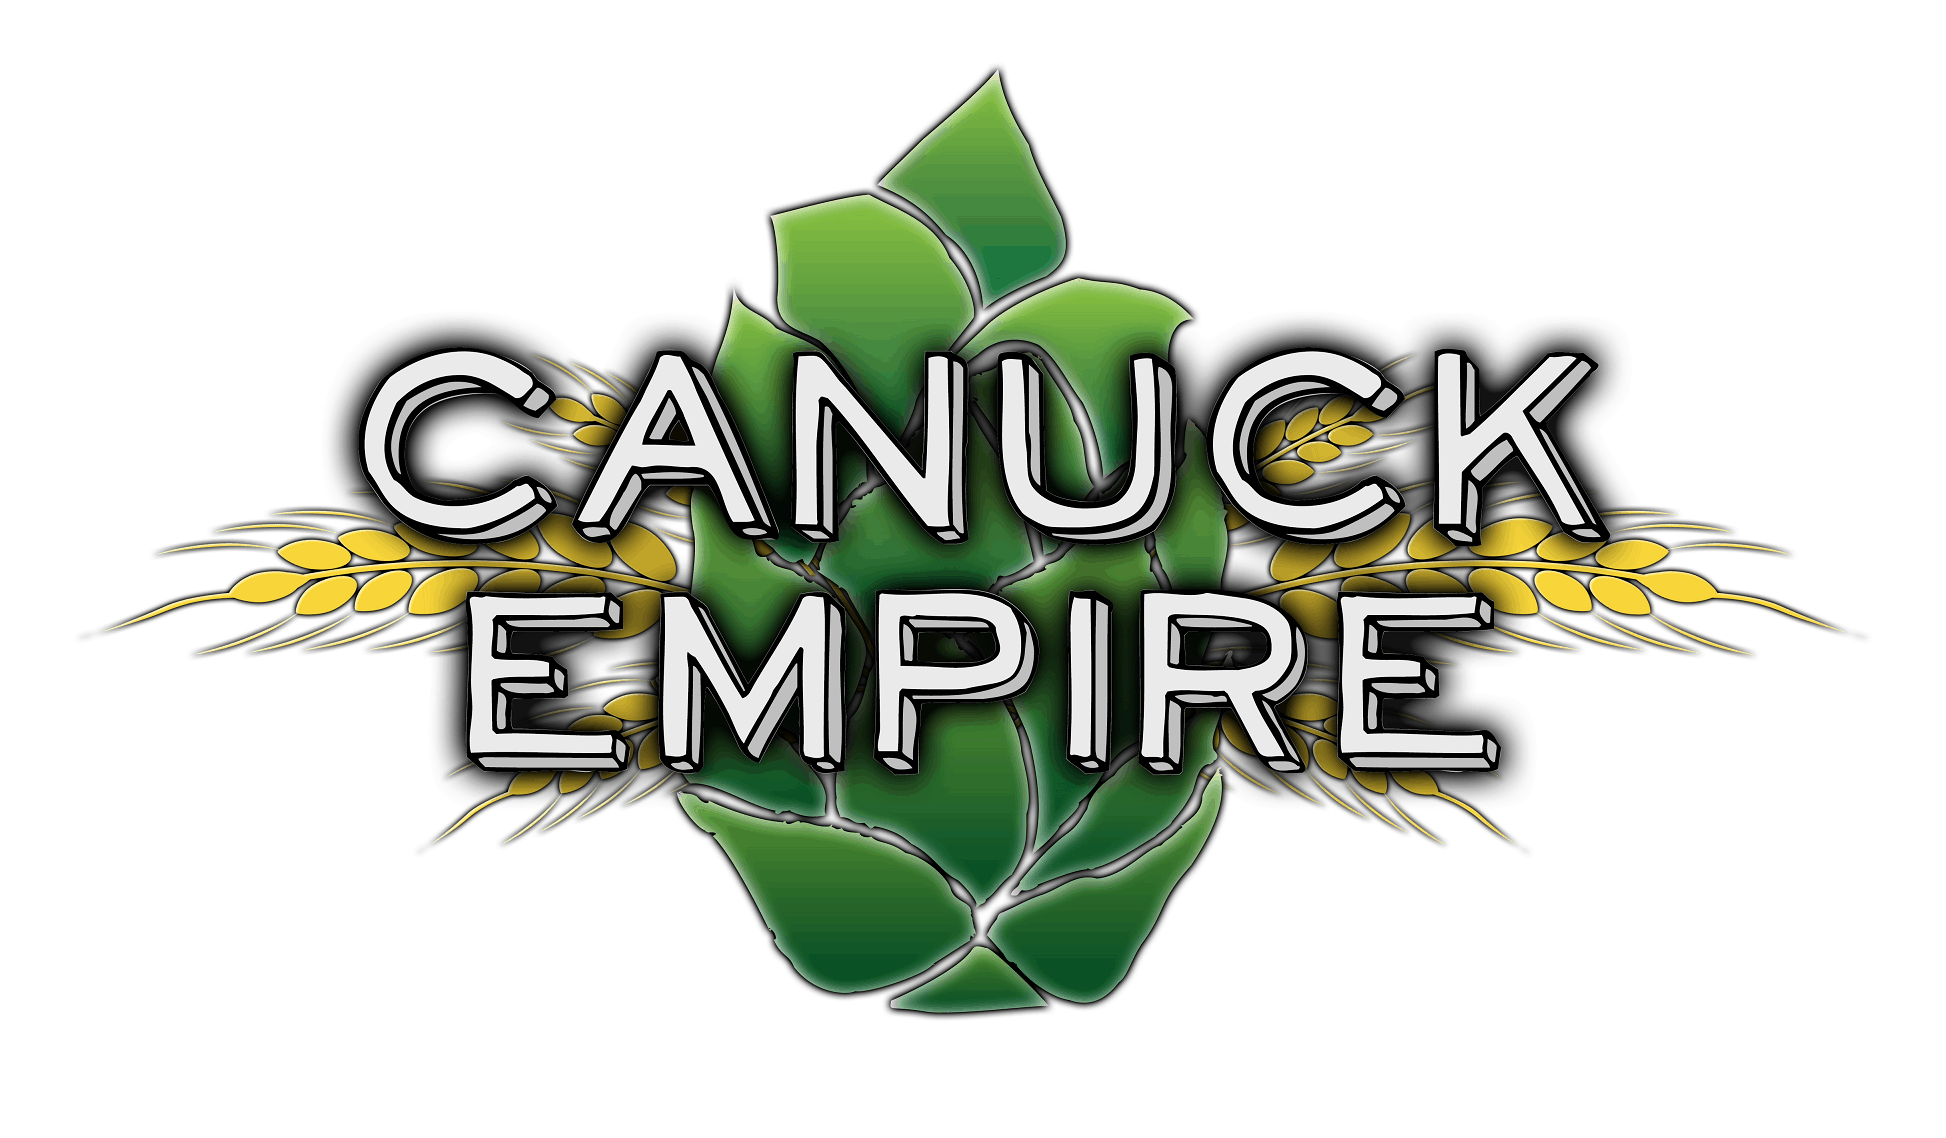 Canuck Empire Brewing